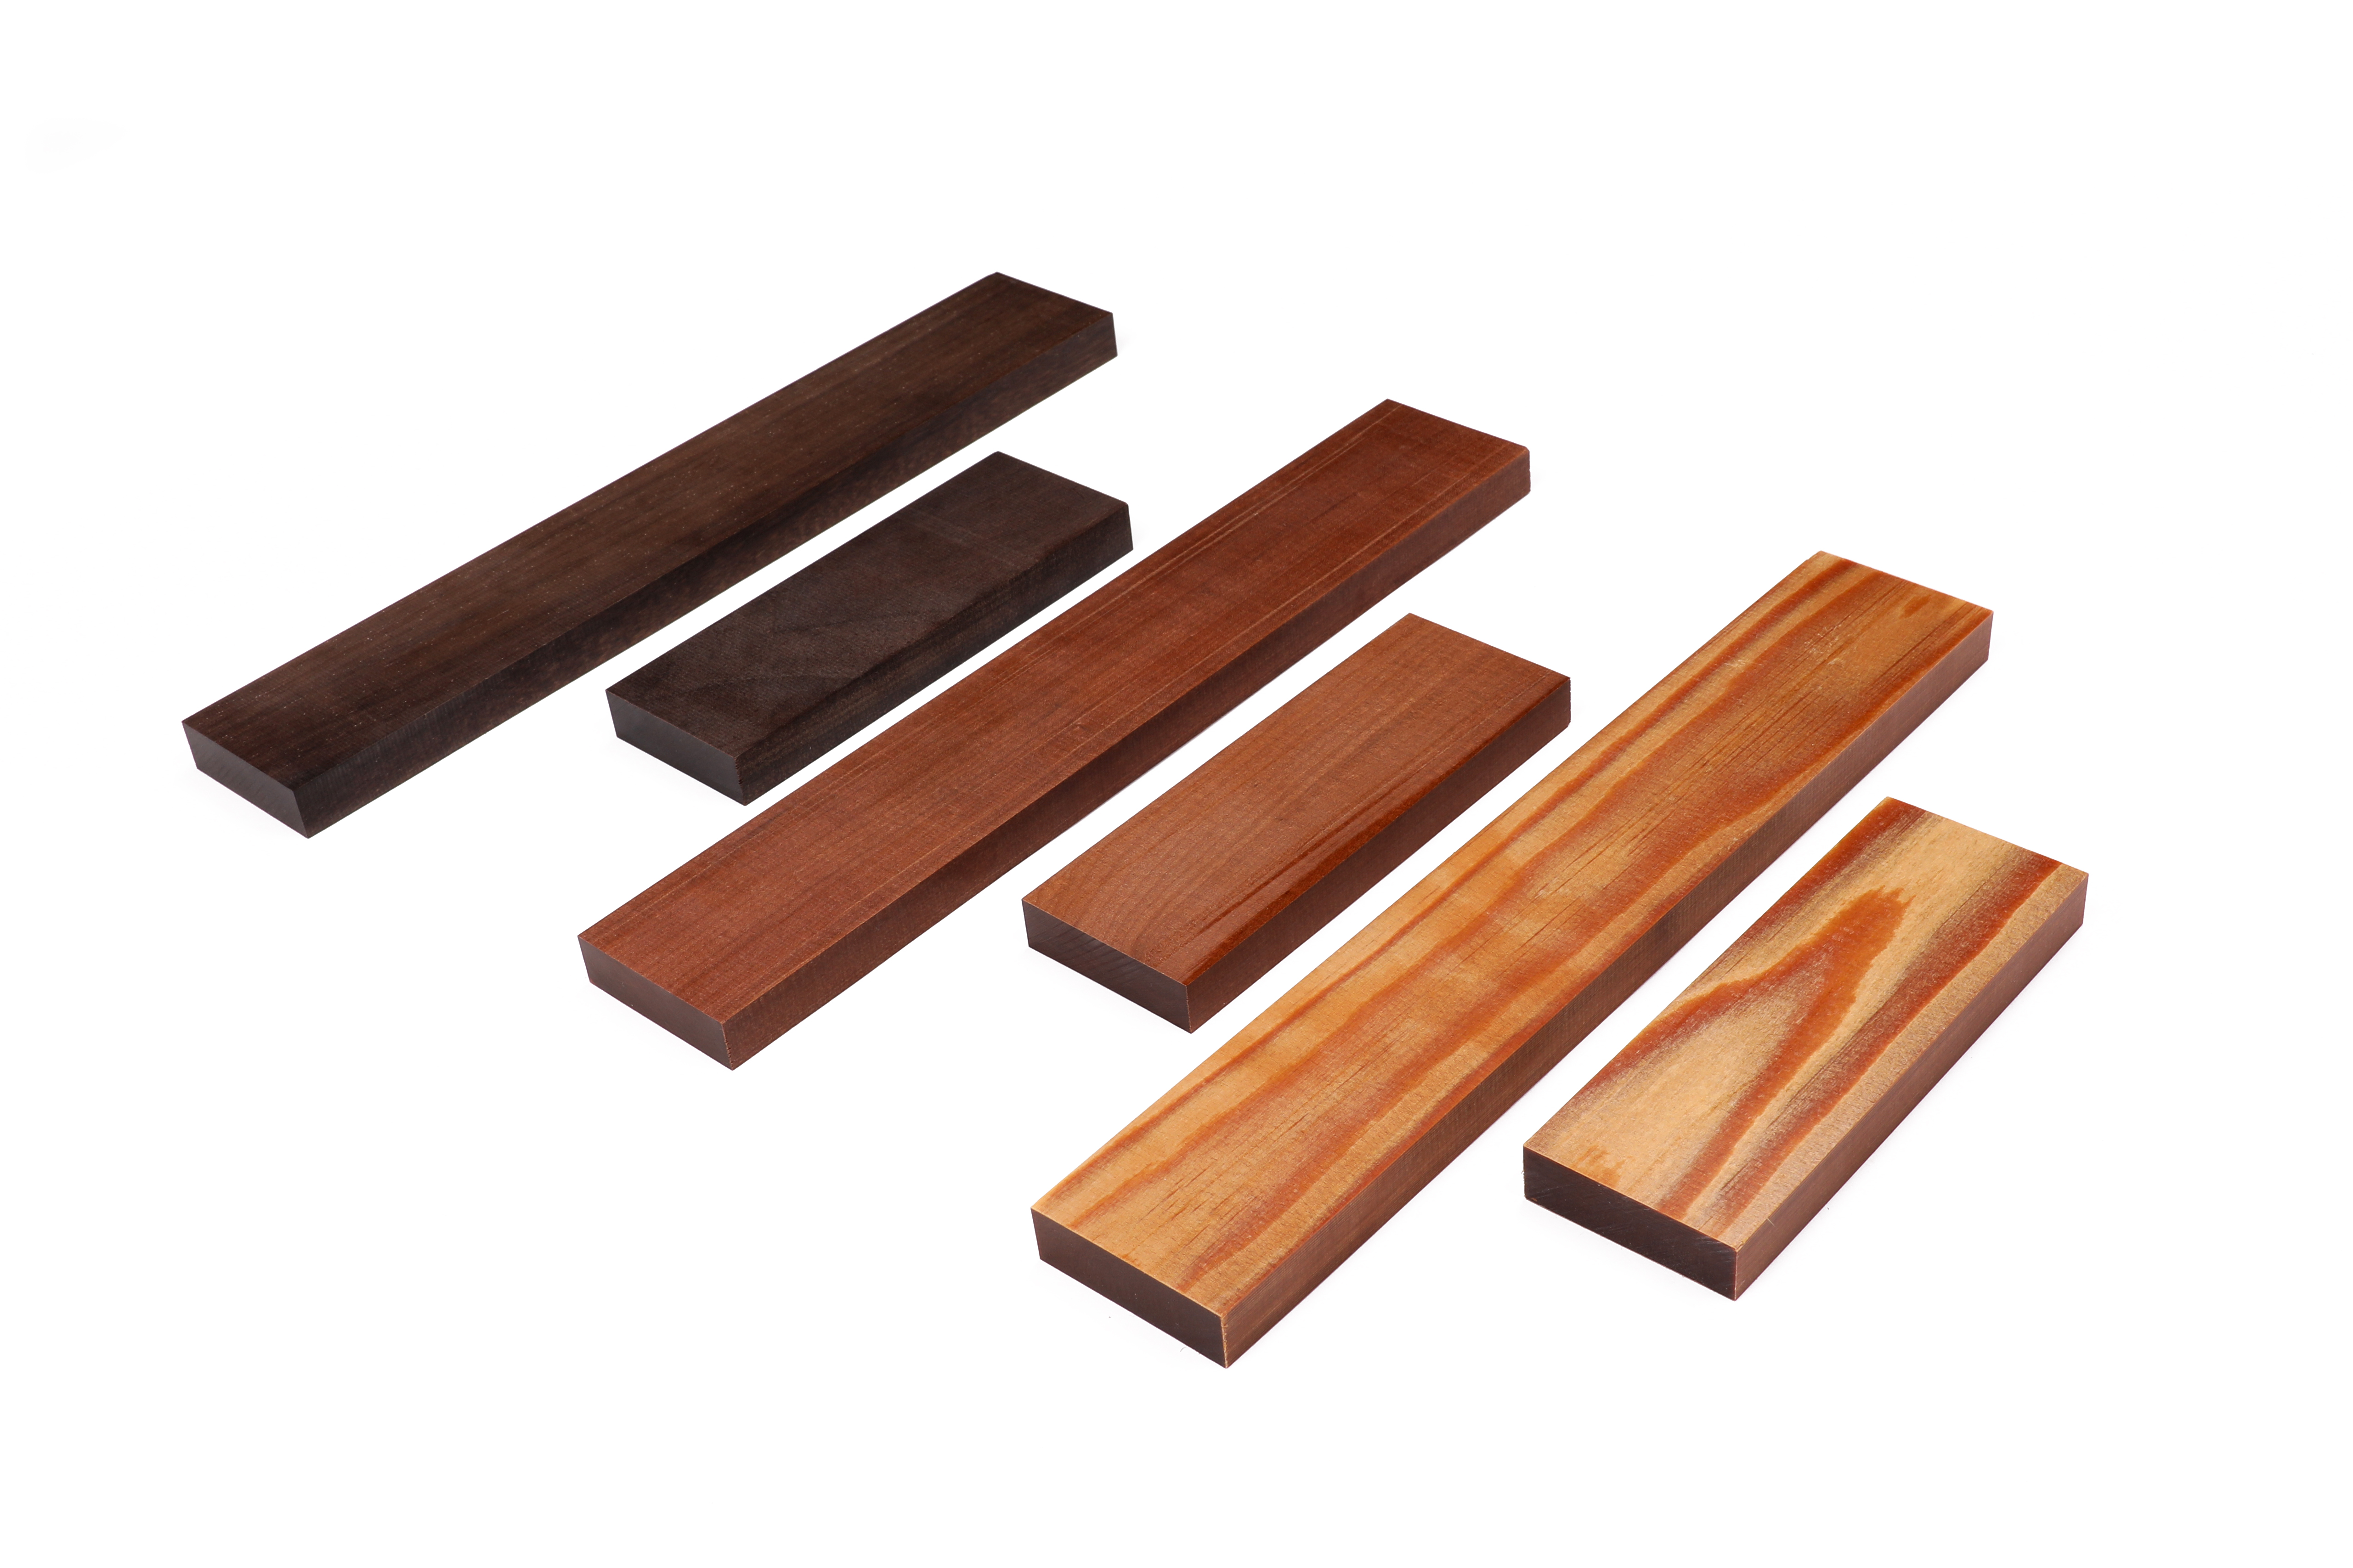 Sonowood square timbers for fingerboard and tailpiece. Left: walnut, center: maple, right: spruce